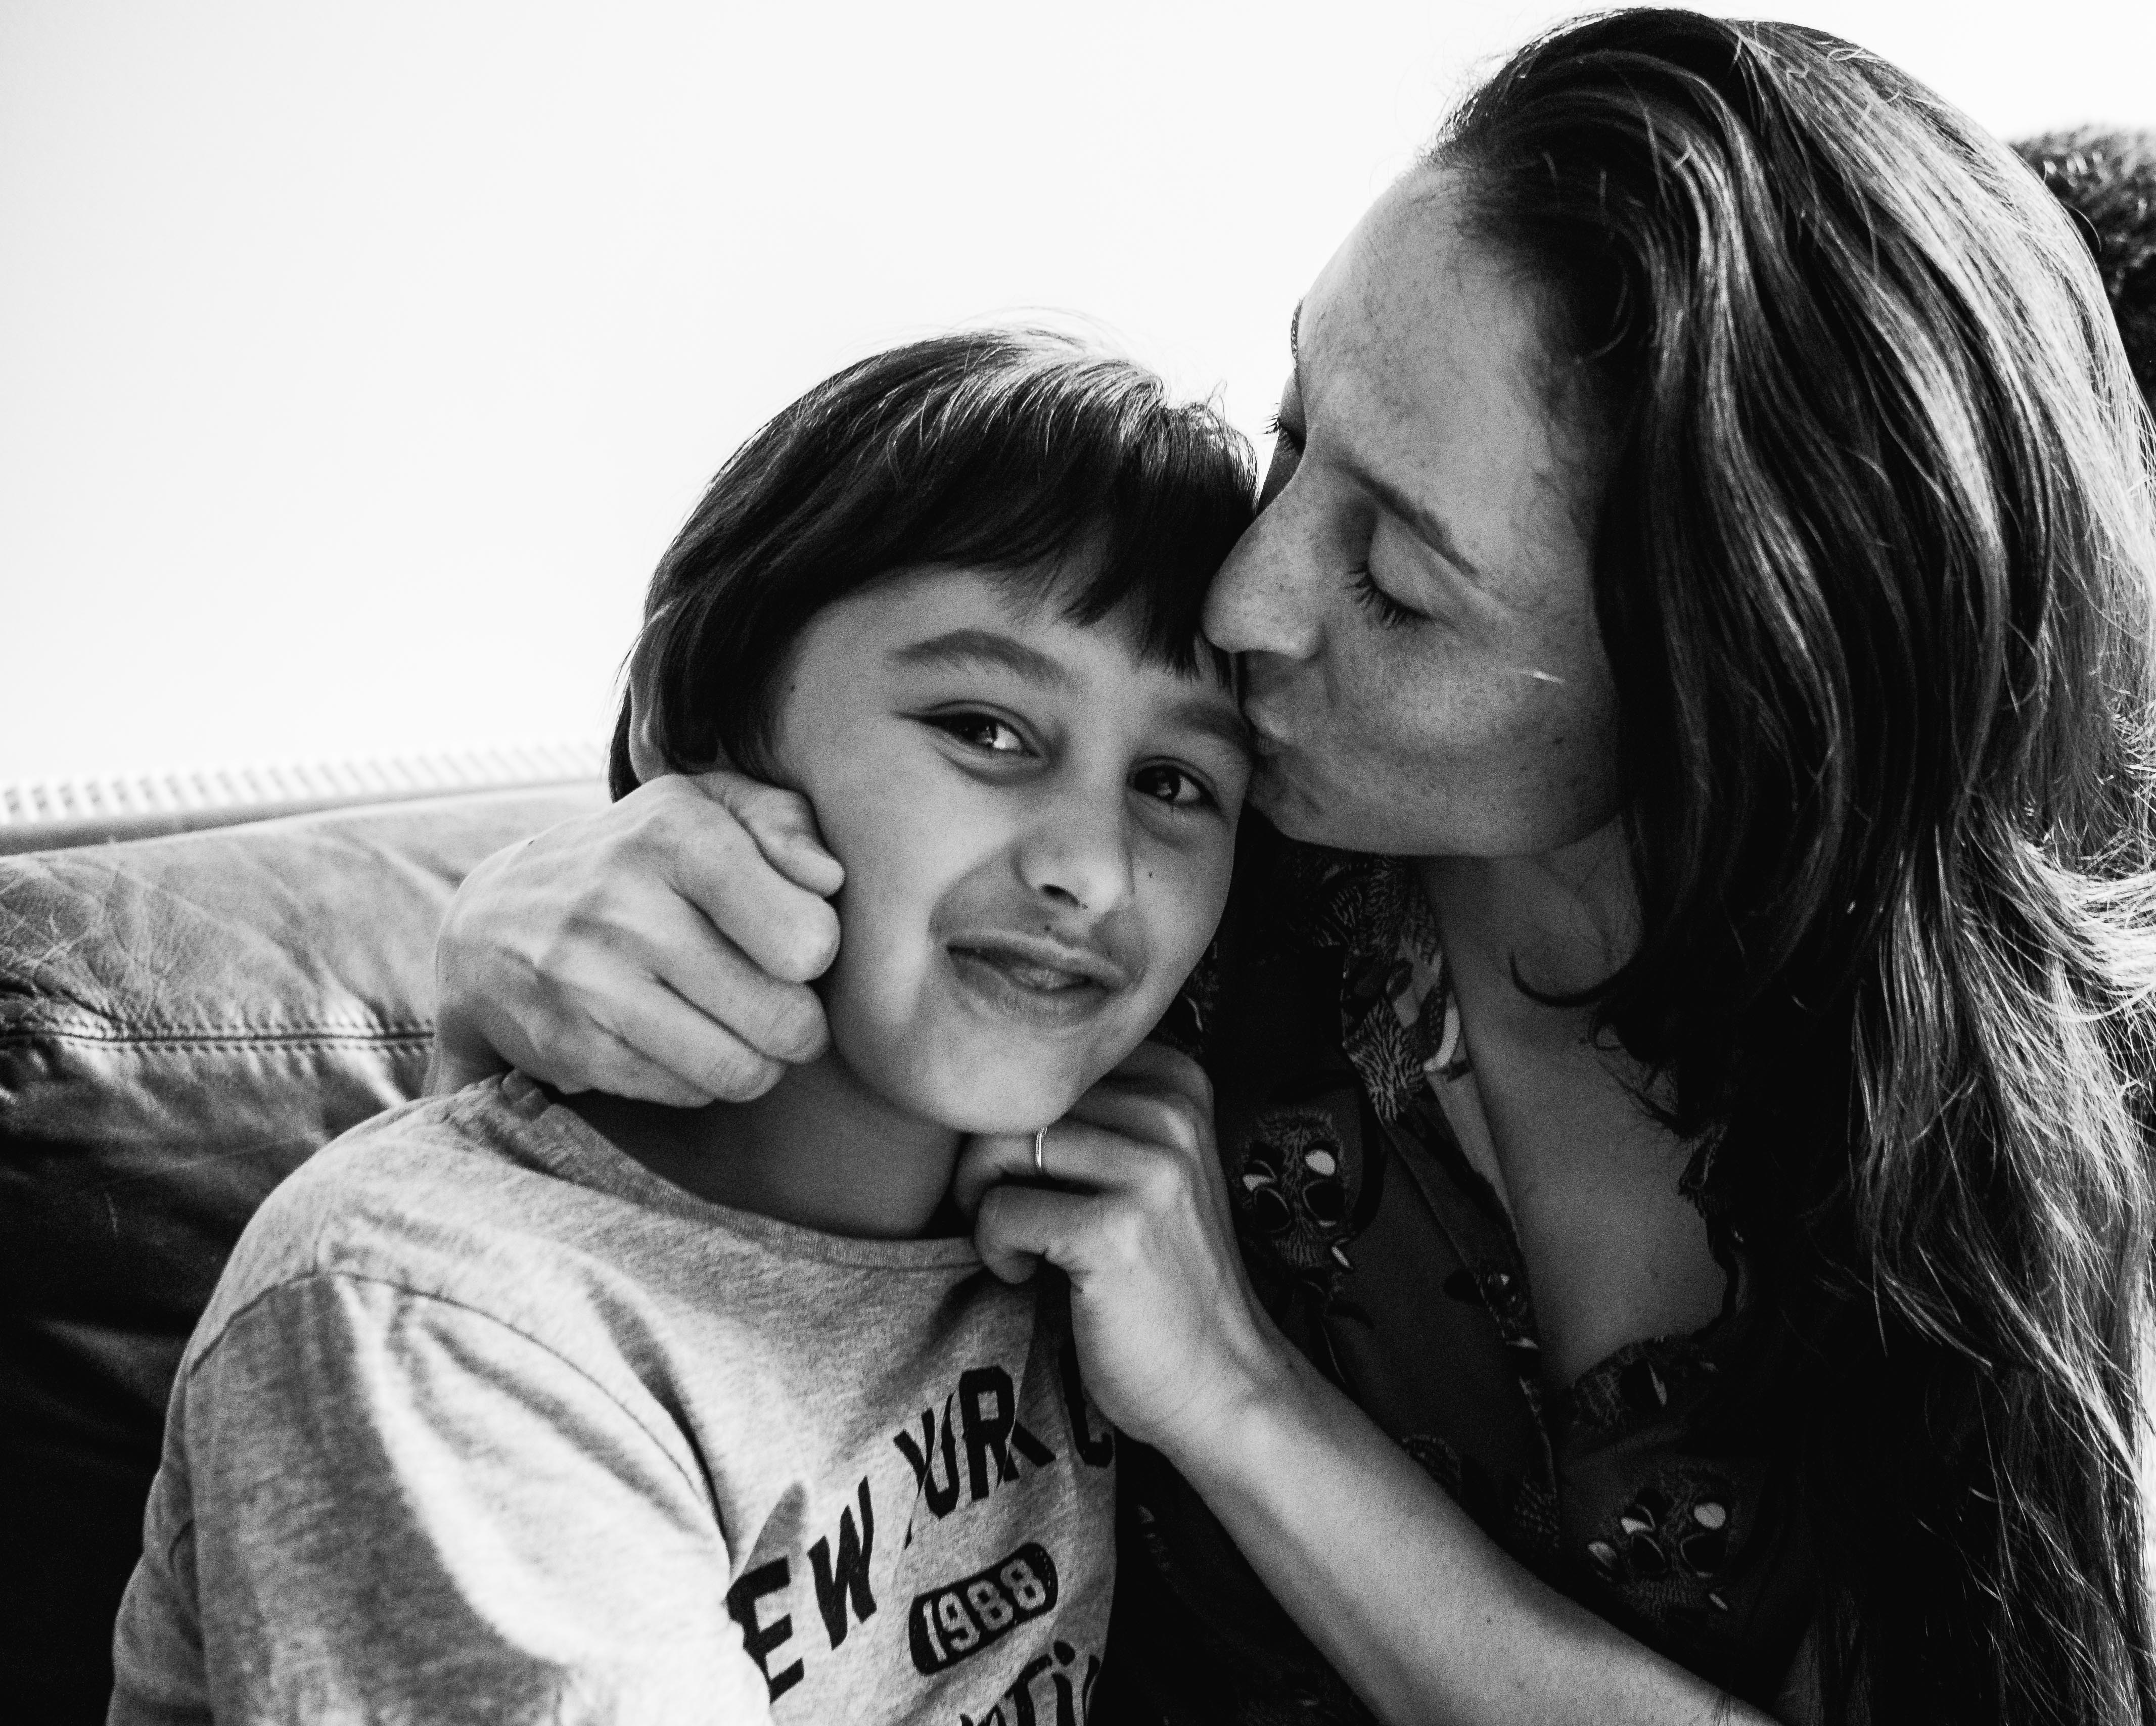 in-home session photograph of mother kissing and cuddling her son in Carlton North, Melbourne, Australia